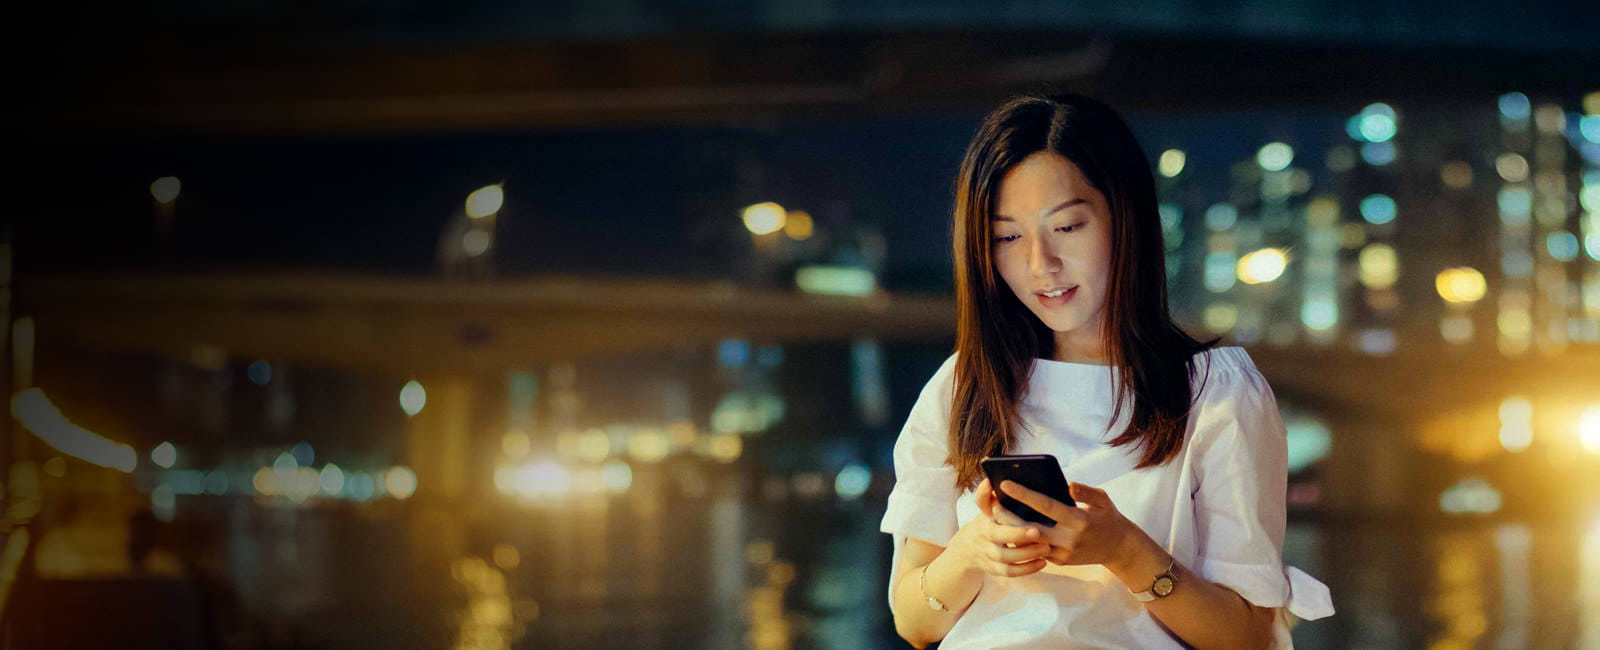 A woman uses her mobile phone standing outside at night with the city lights blurred behind her.